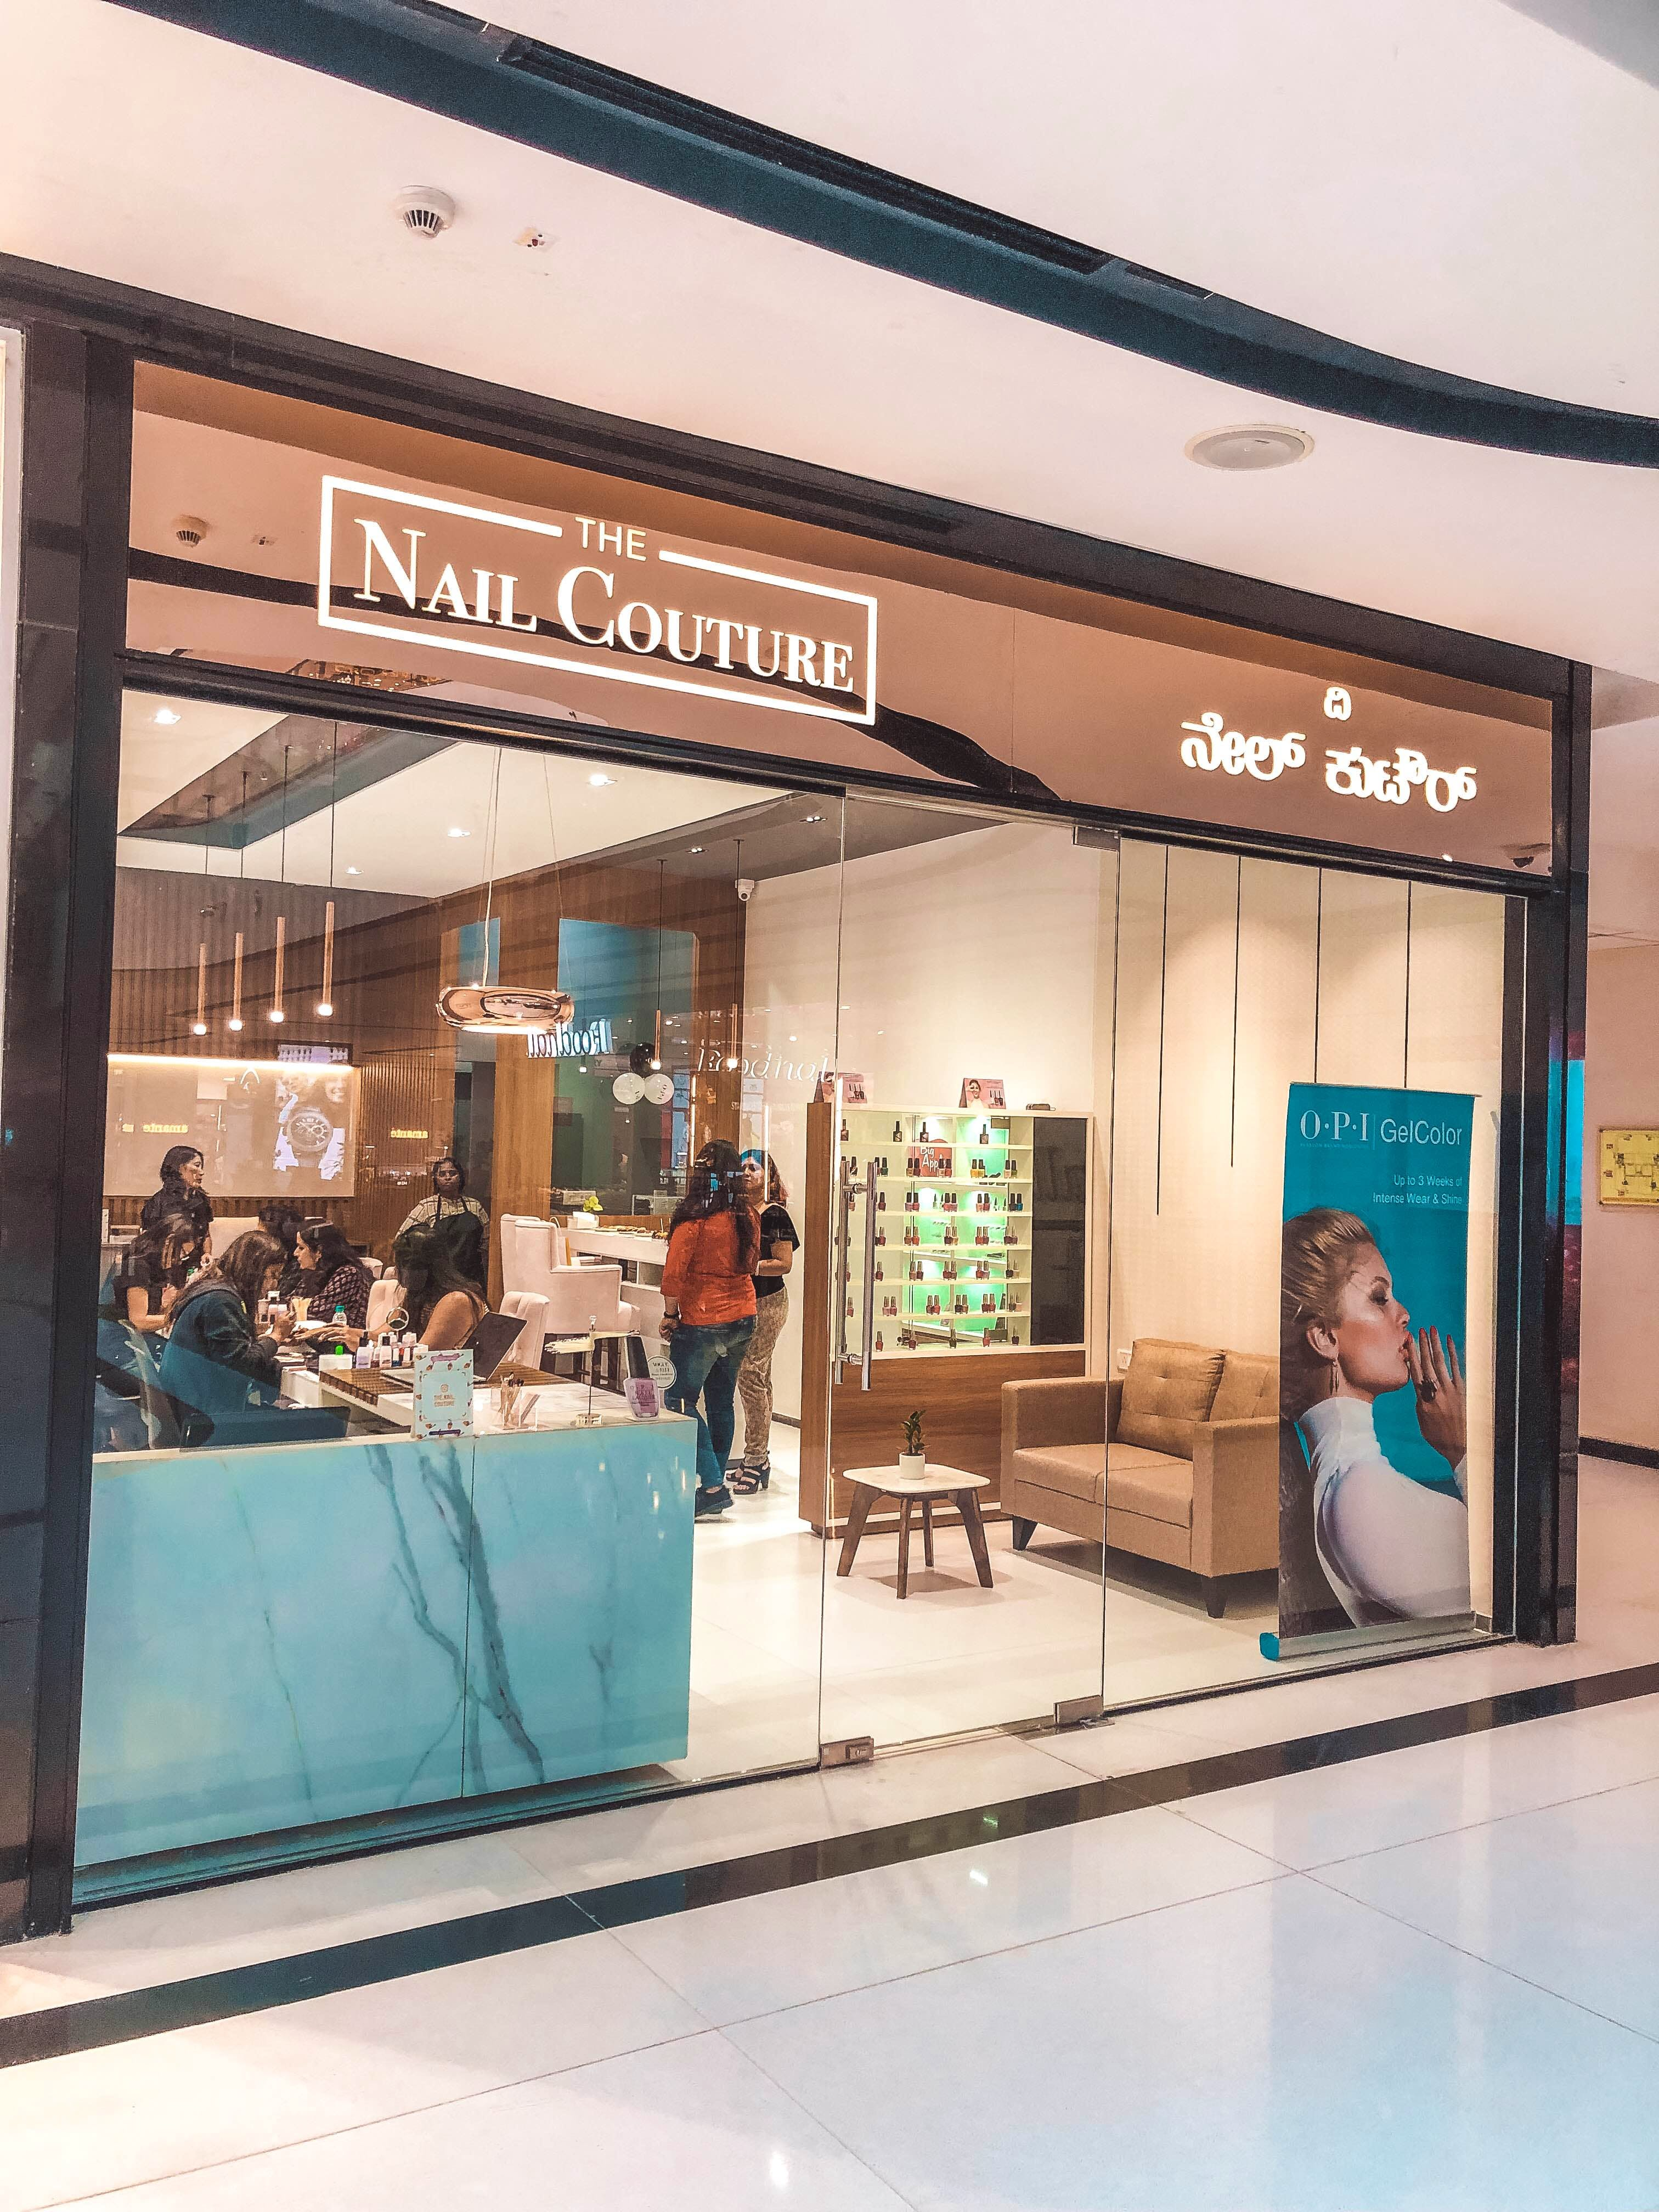 Building,Outlet store,Shopping mall,Boutique,Retail,Display window,Interior design